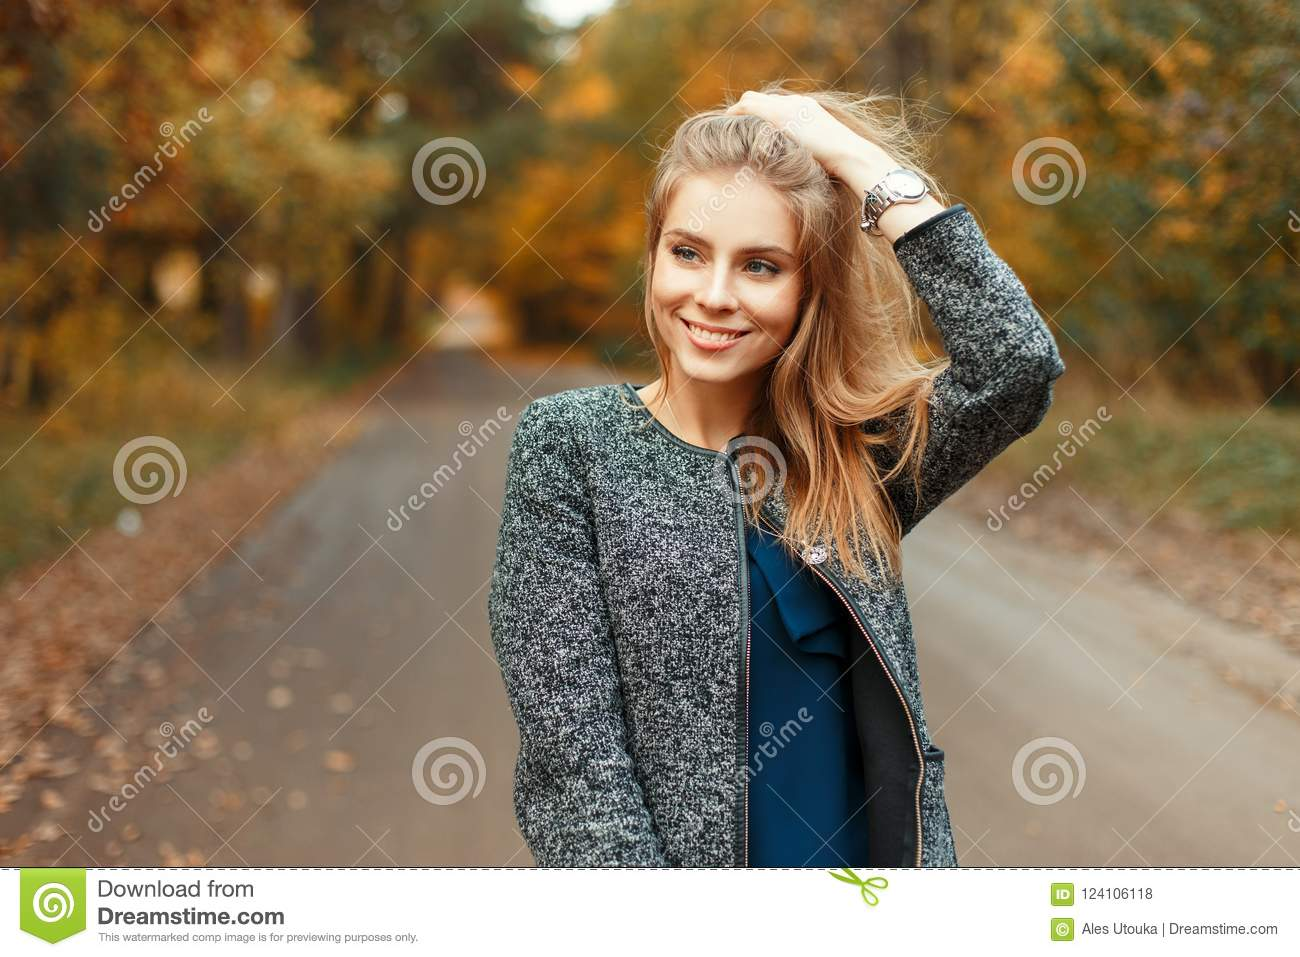 025c8ff90a Autumn portrait of a beautiful happy woman with a smile in fashionable  clothes in the park